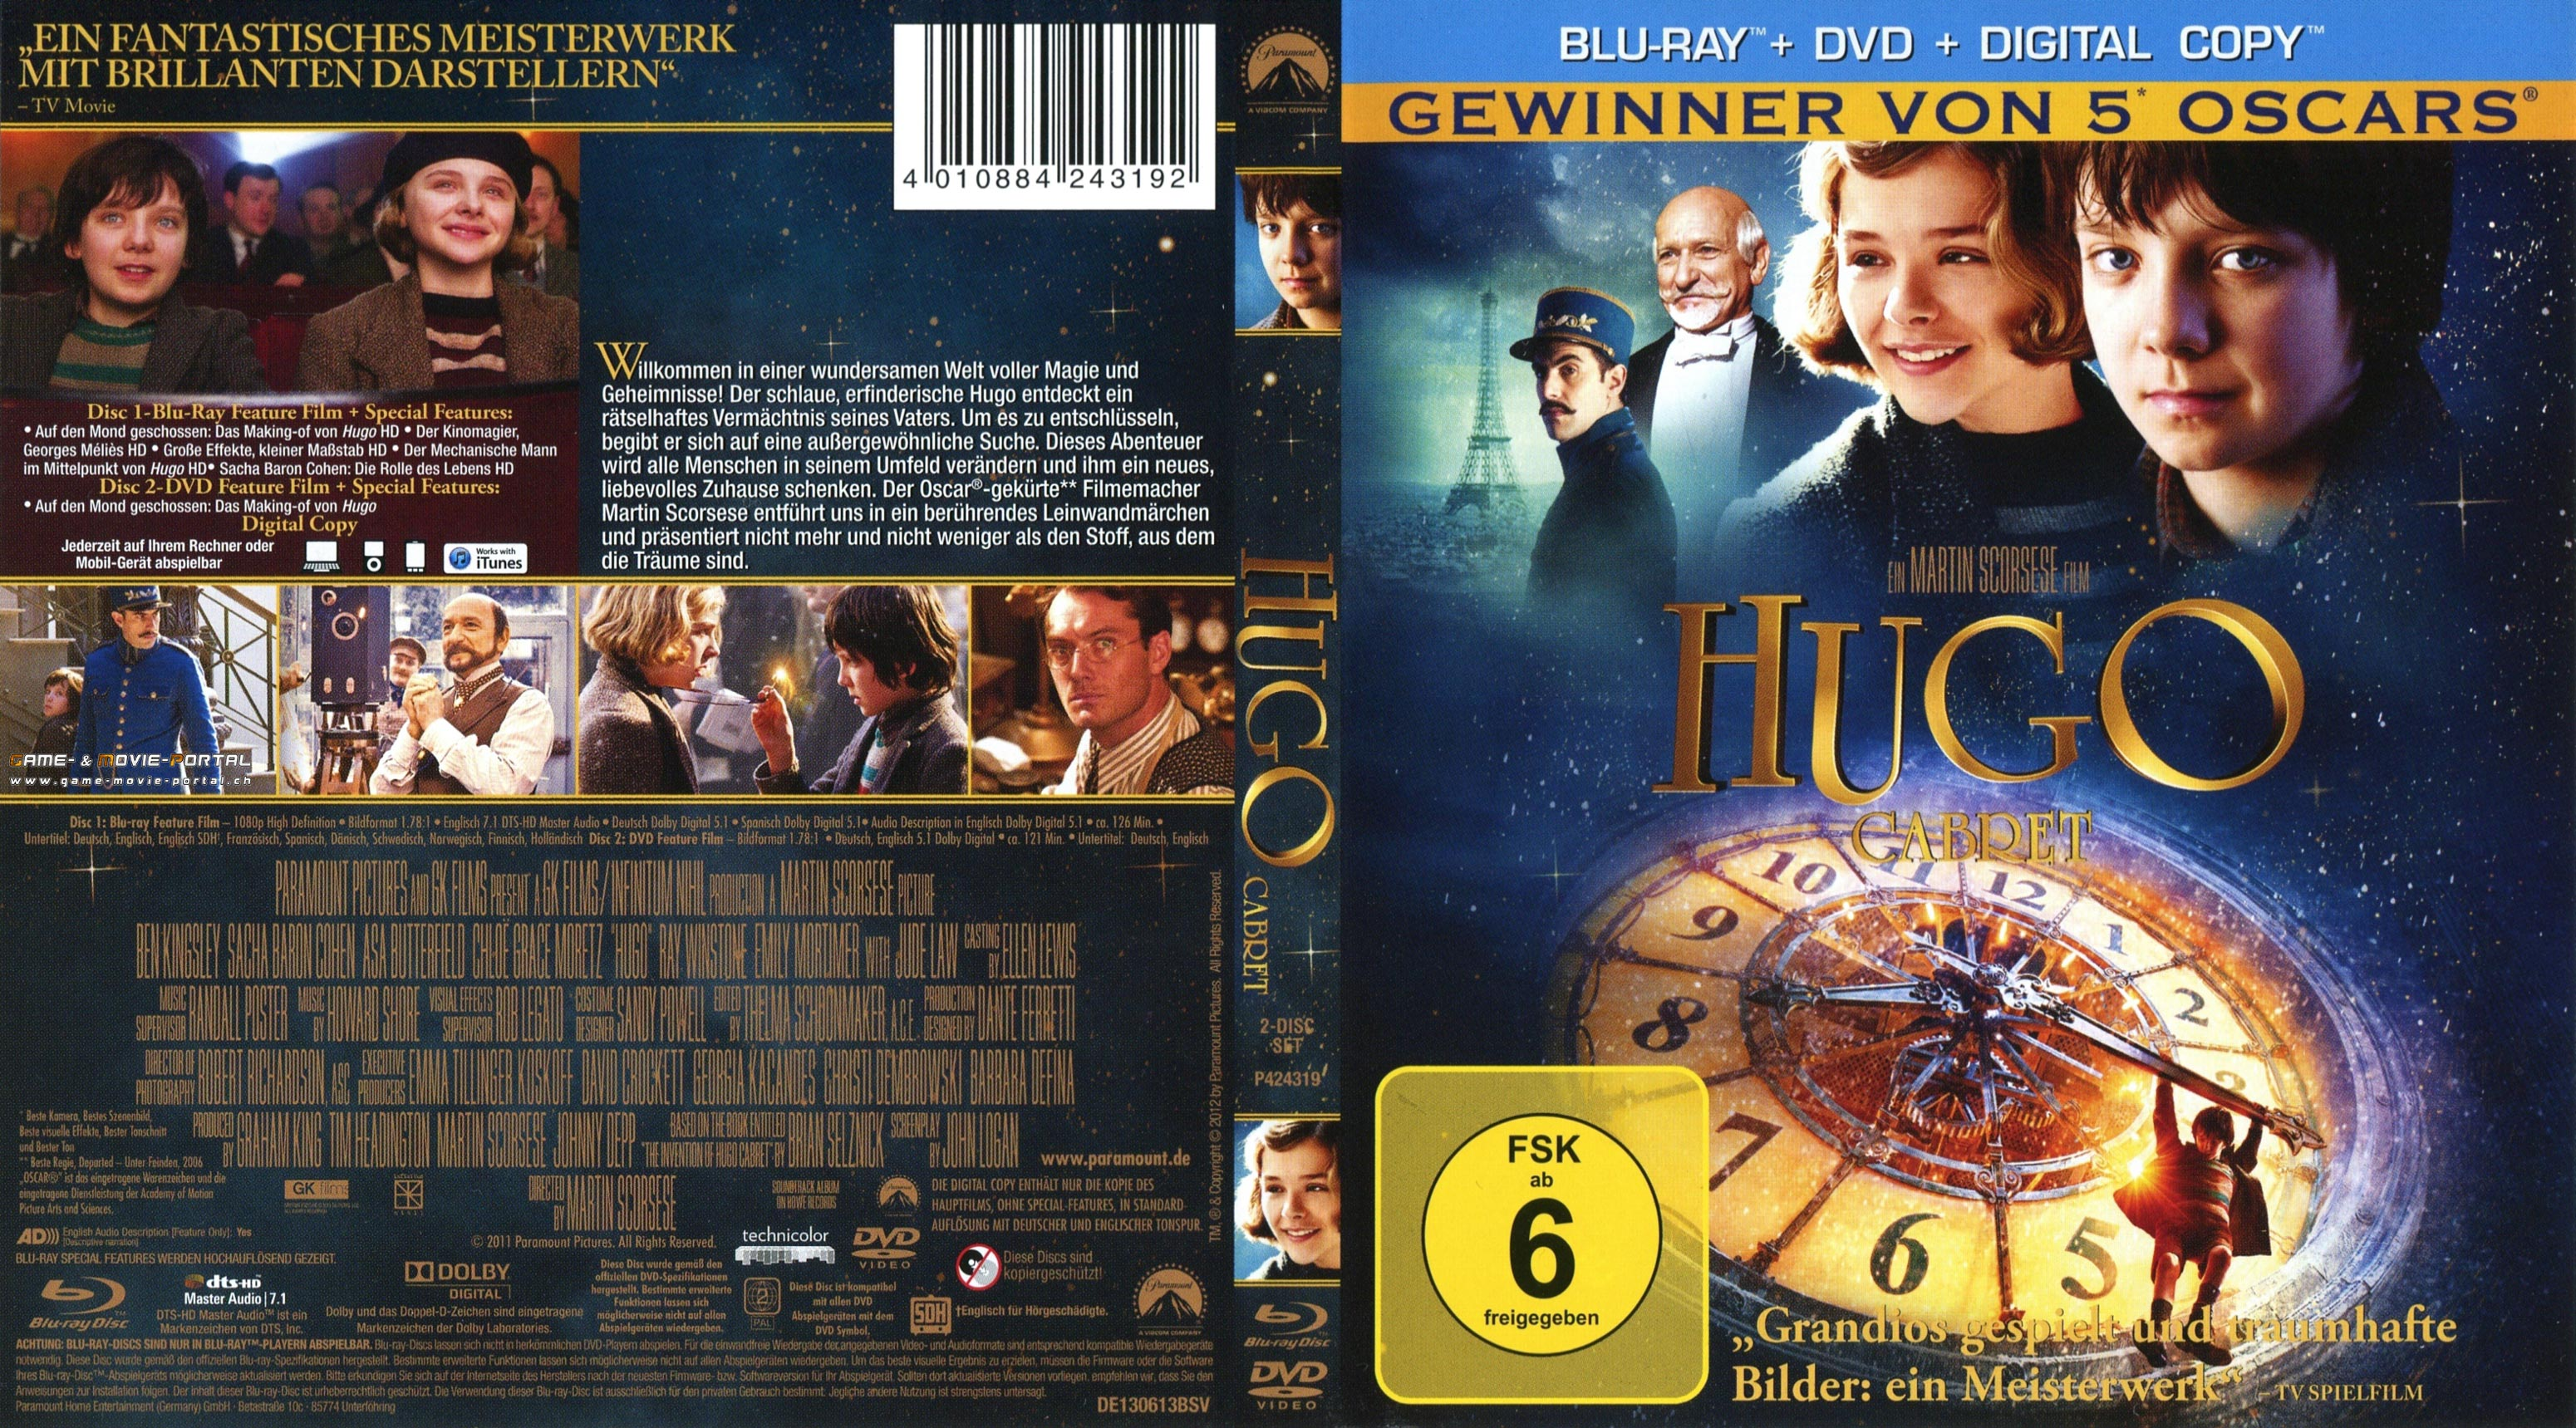 Hugo Cabret blu ray cover german | German DVD Covers Sandra Bullock